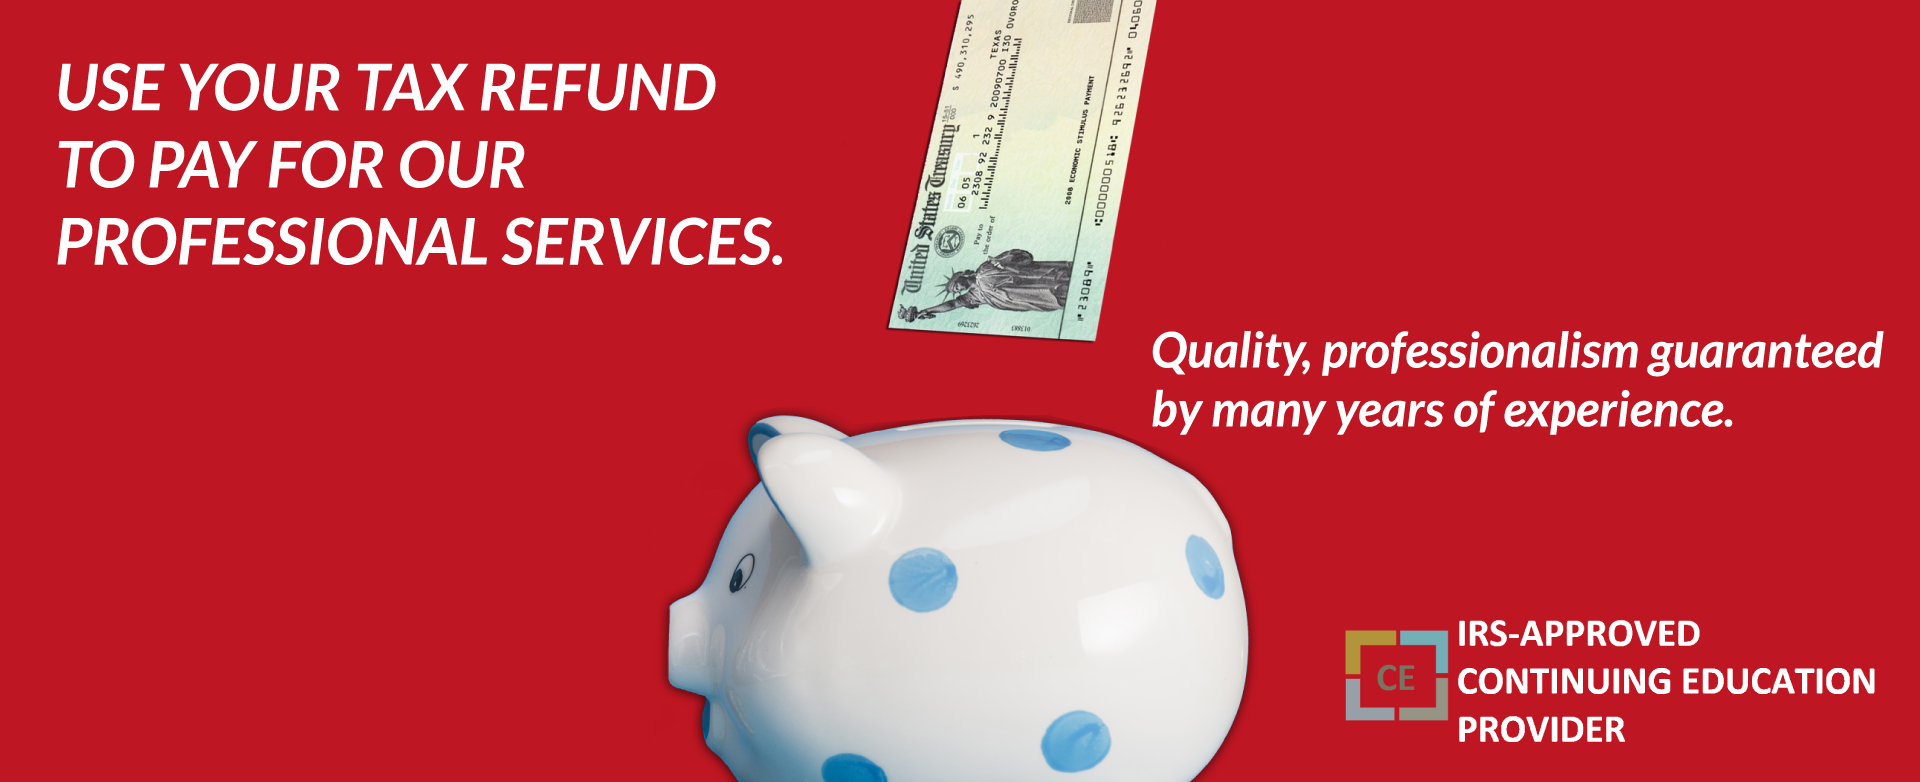 Use your tax refund to pay for our services.